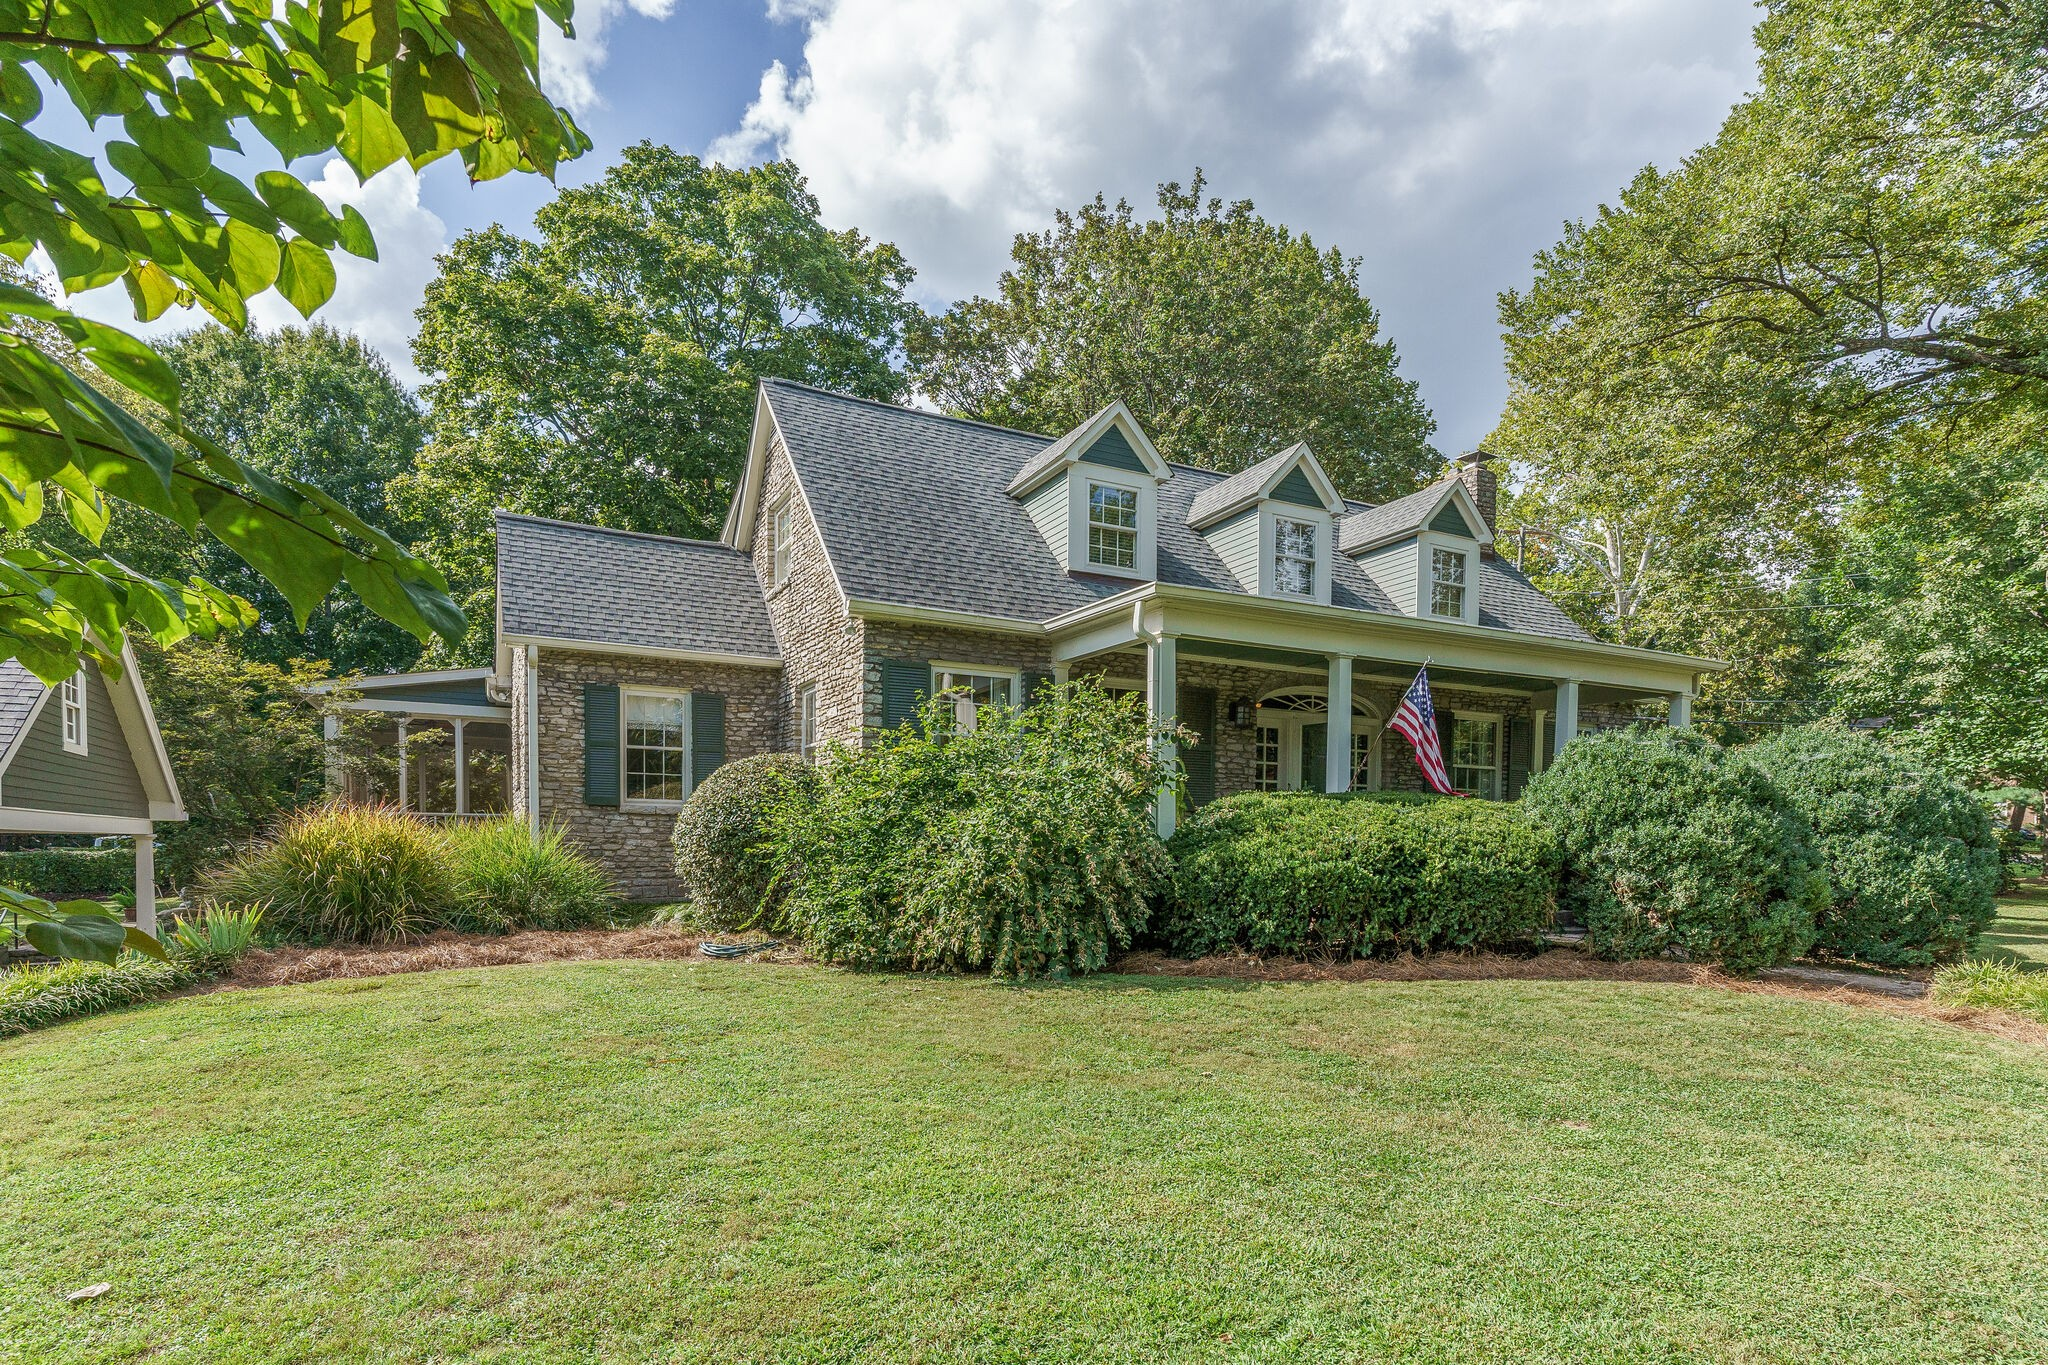 Beautiful stone Cape loaded with charm and character.  Fabulous open kitchen with large family room addition.  Hardwoods throughout, 3 FP's, 9' ceilings down. Office off living room,. Great flow for entertaining. 3-car carport w/overhead storage. Screened porch with removable screen panels.   Large corner lot with mature landscaping.  Great location!  Showings begin Sun,.Sept. 19 at 1:00. p.m.- Offers reviewed Fri., Sept. 24, at 4:00 p.m.